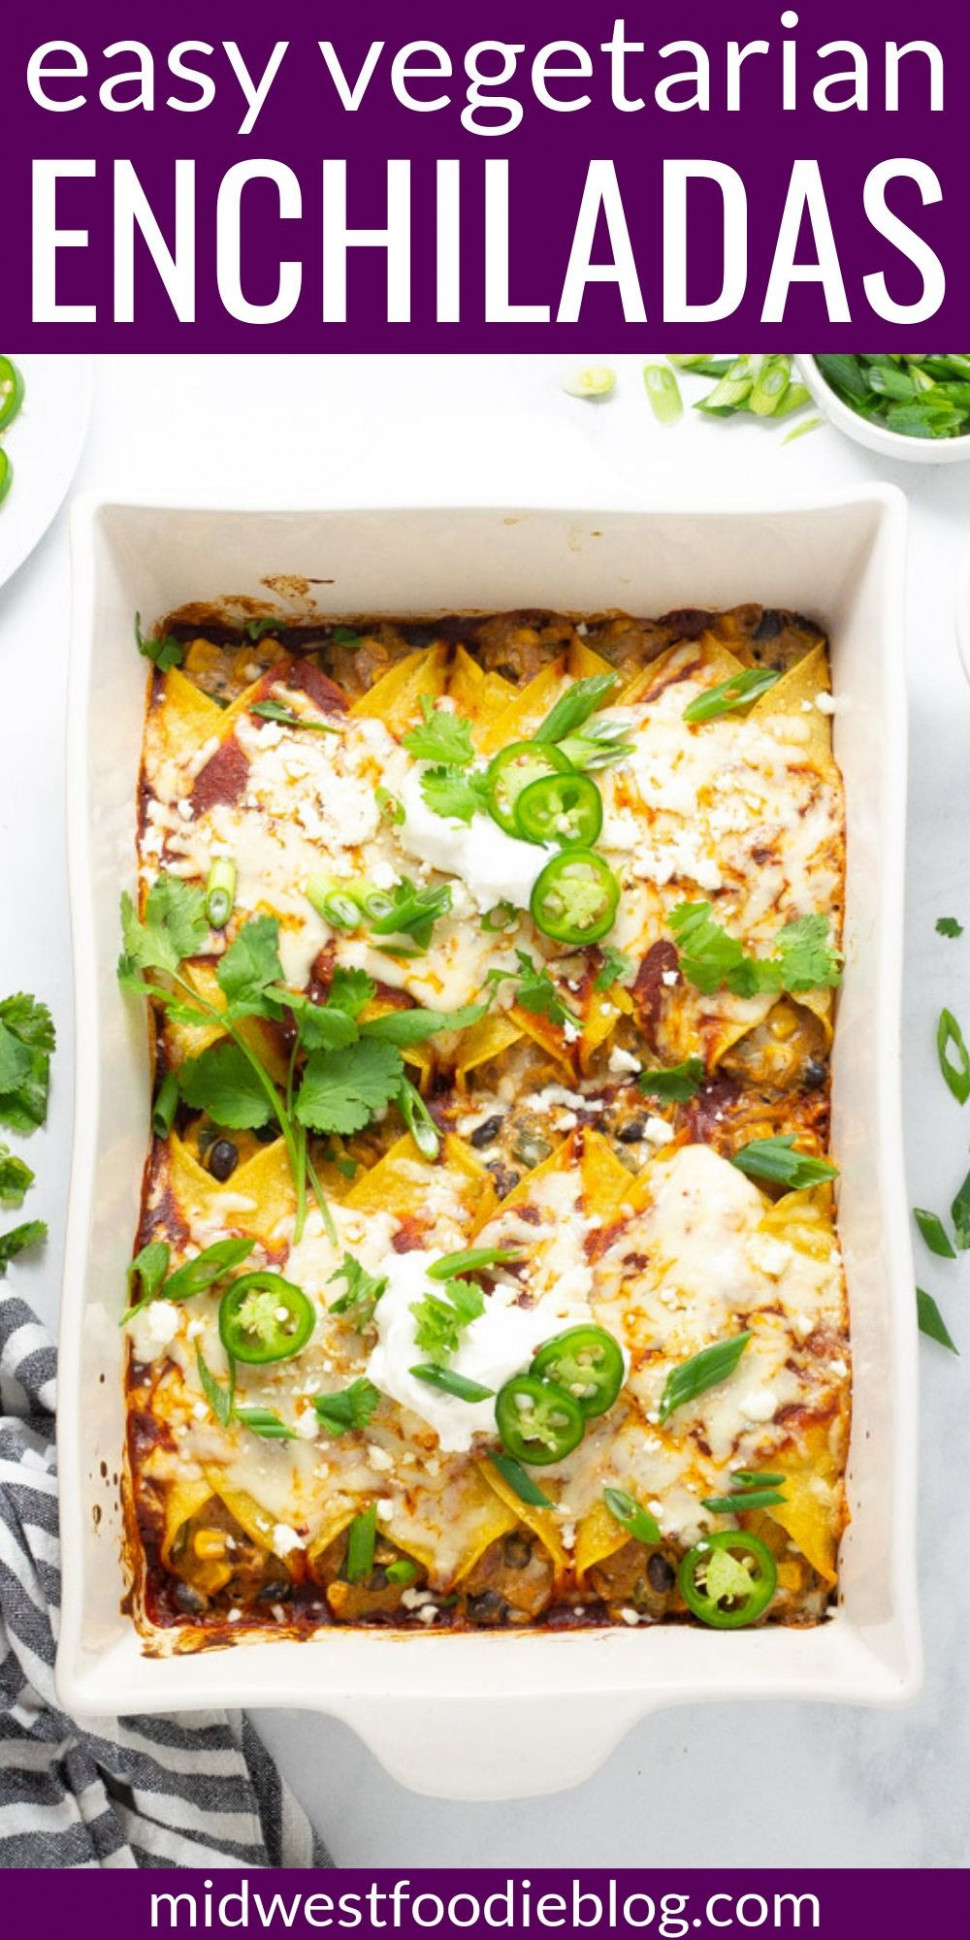 My Favorite Veggie Enchiladas - recipes vegetarian enchiladas